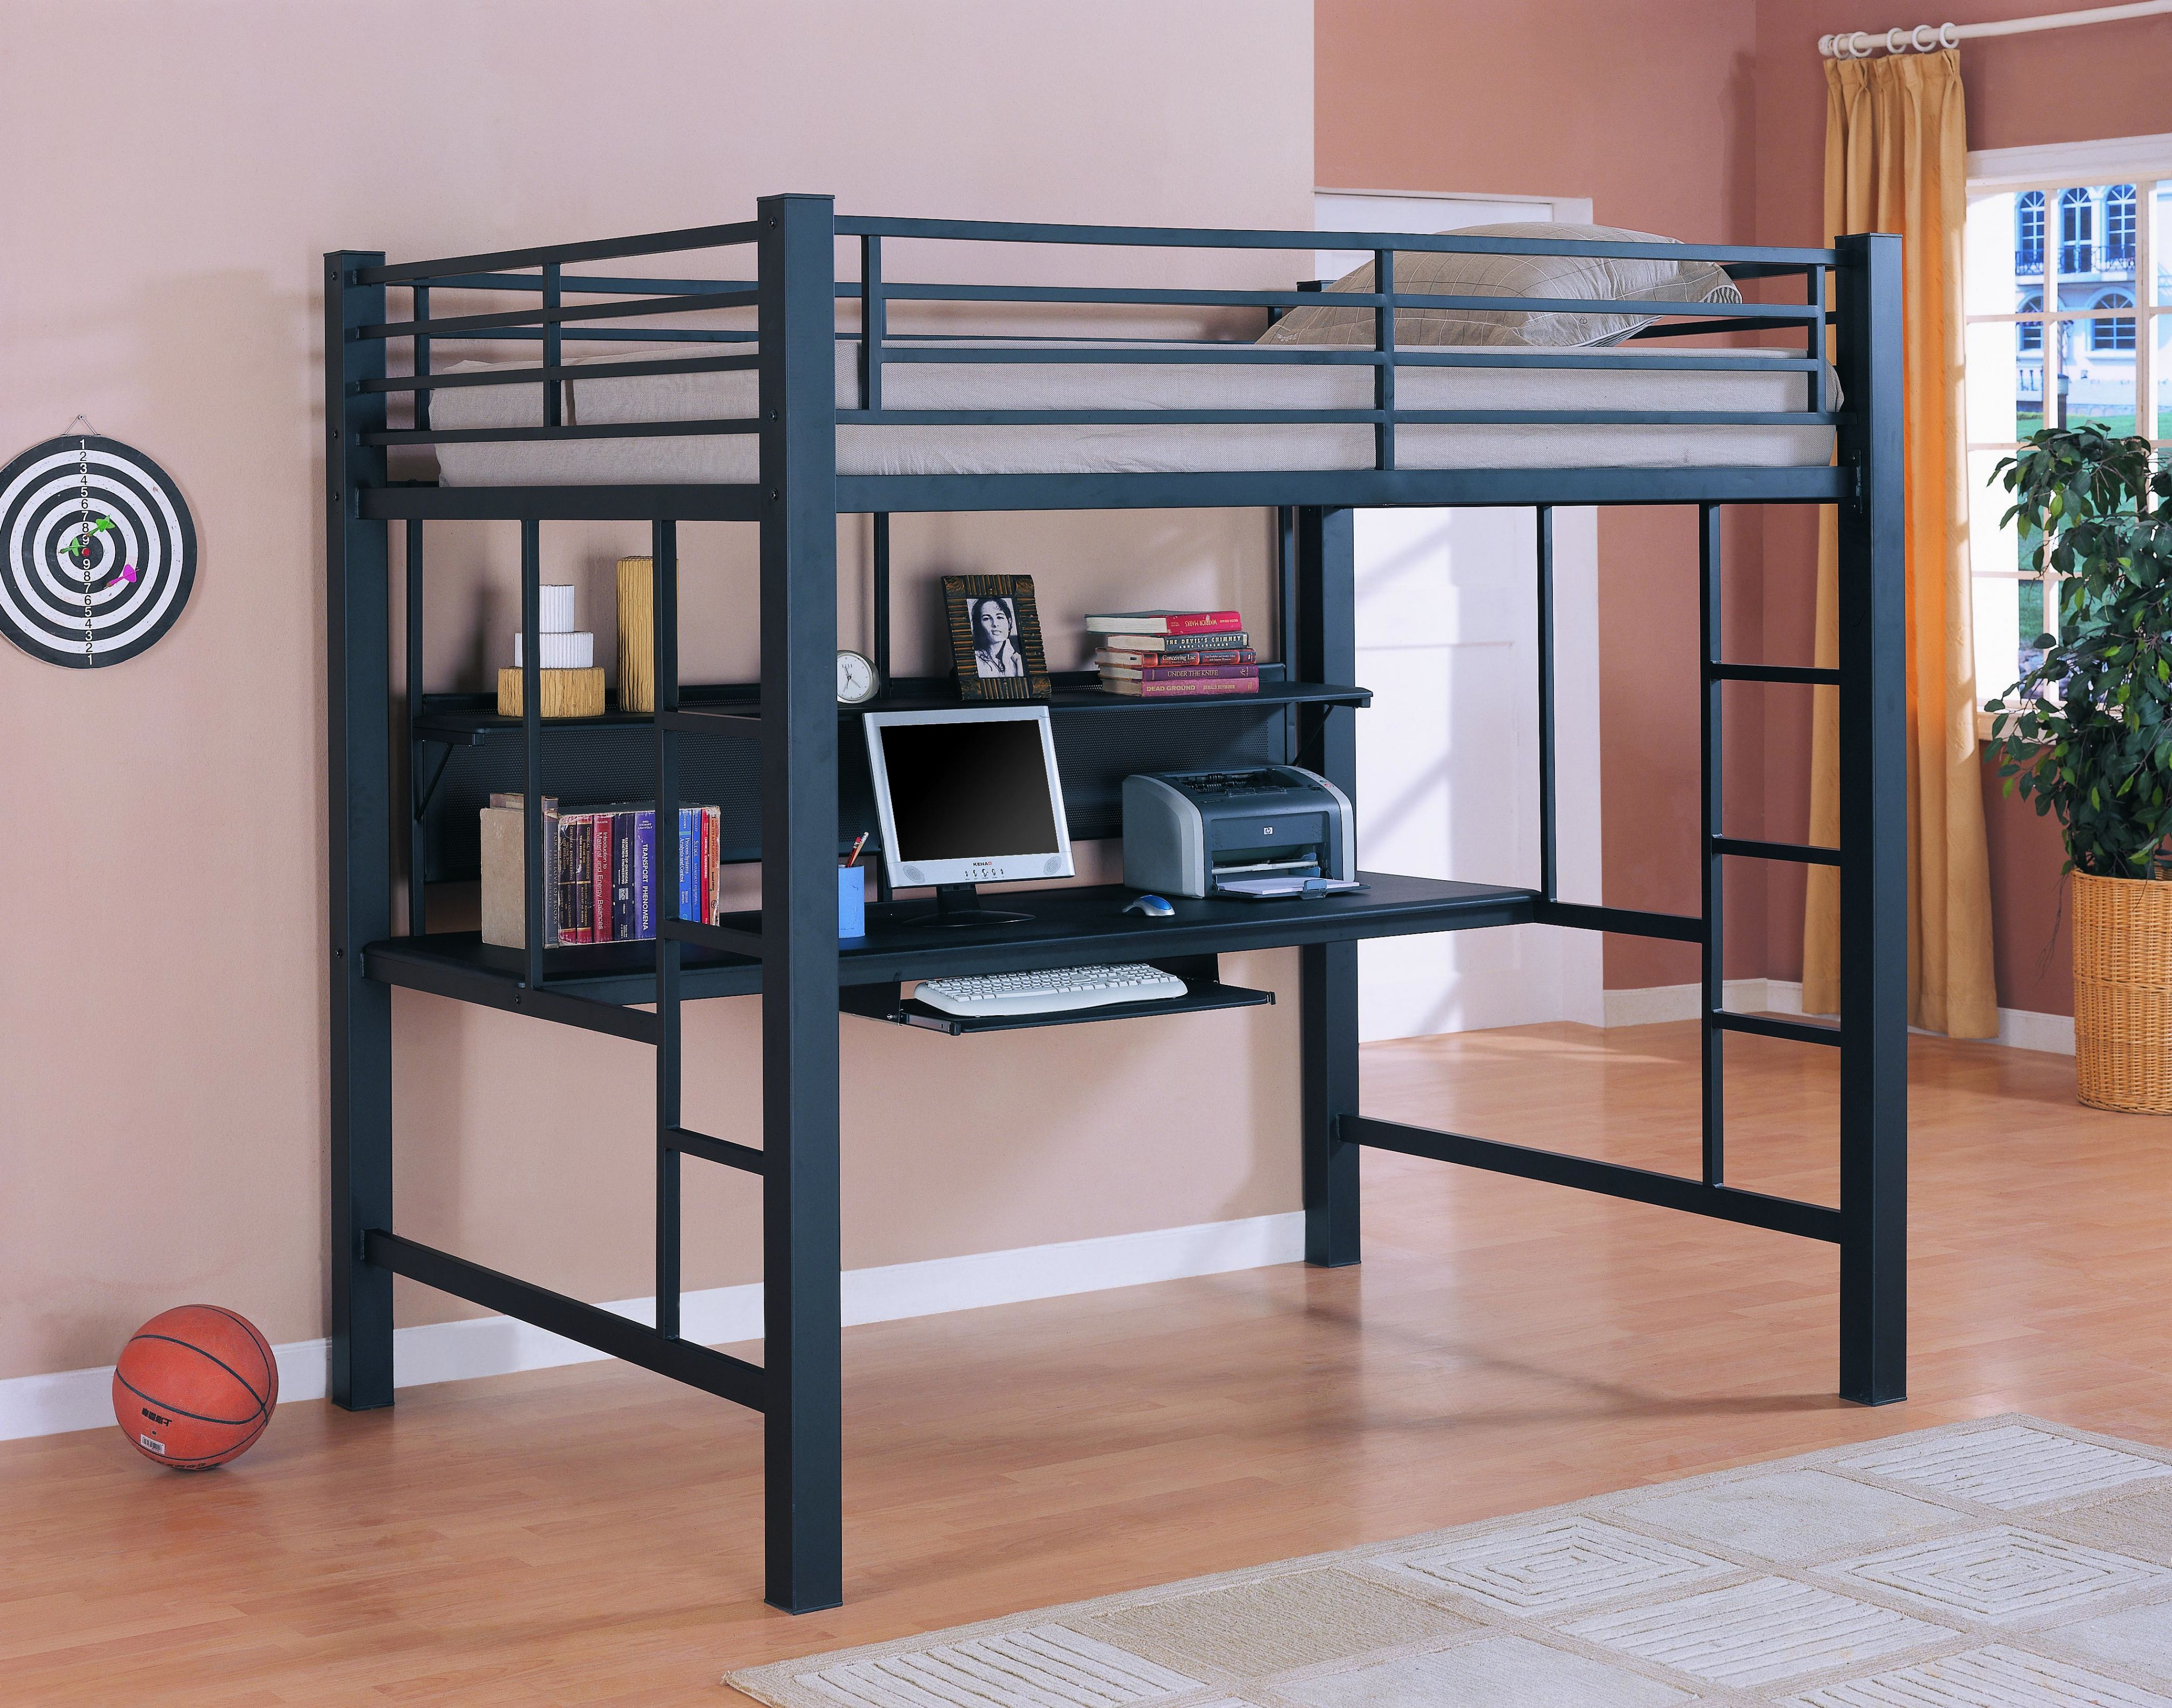 for underneath only loft ikea bunk with desk bed size adults beds king stairs full of